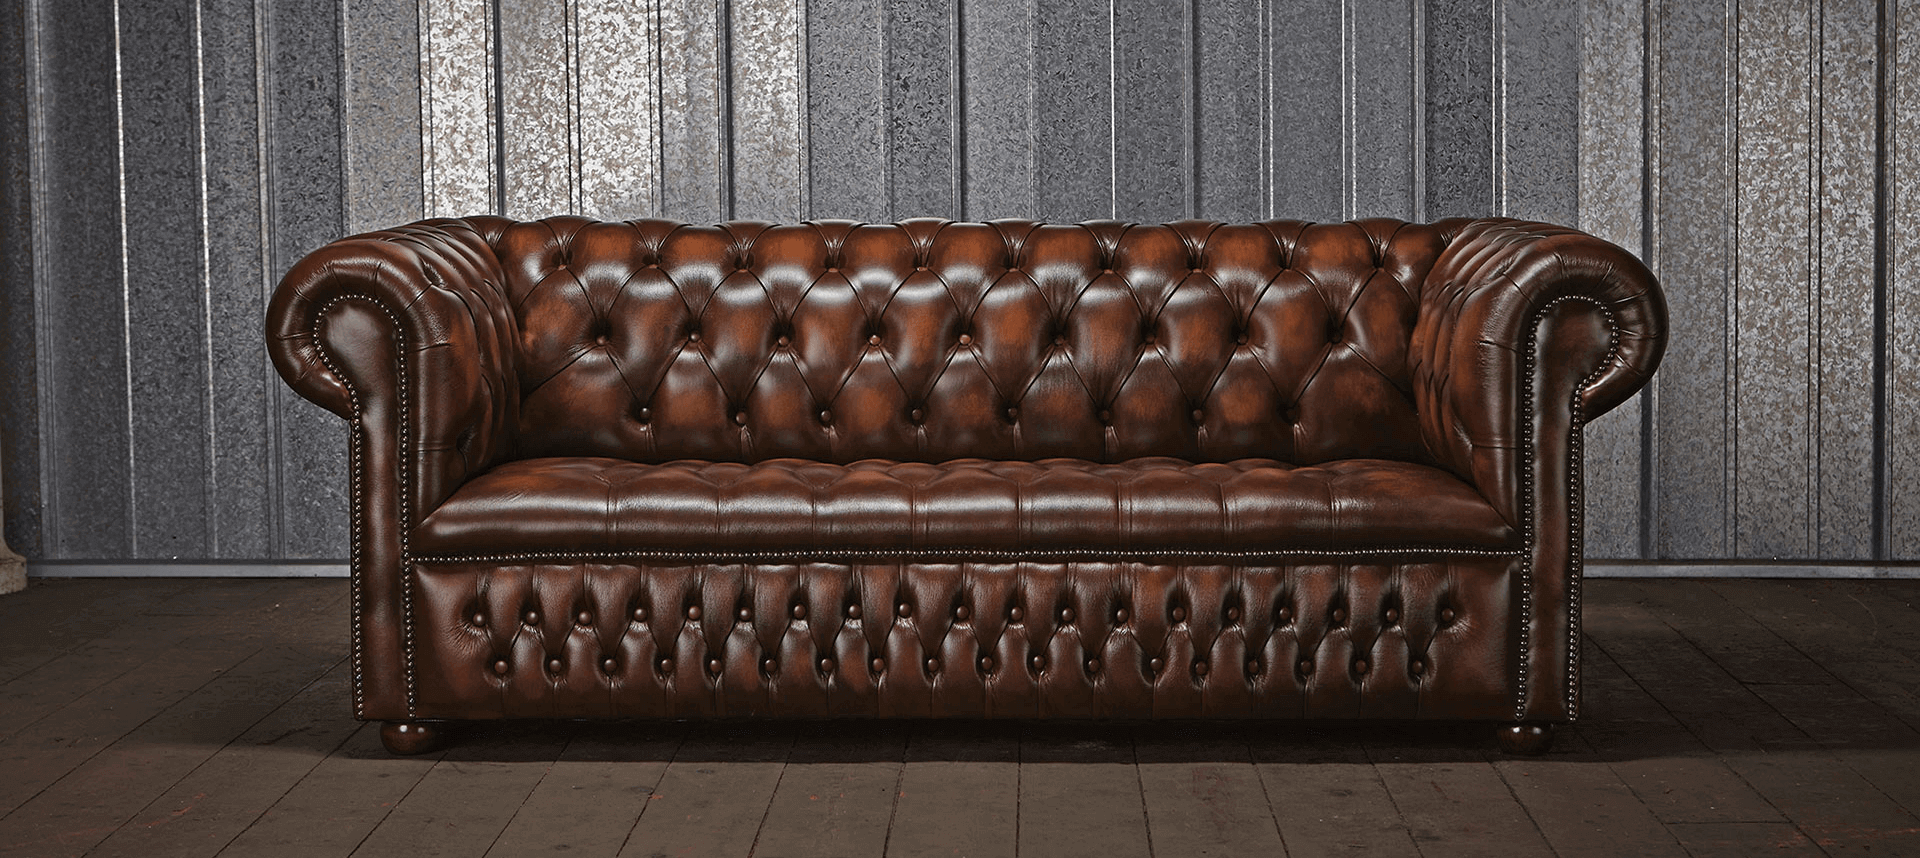 Chesterfield Divano Originale.Divani E Poltrone Chesterfiled 100 Originali Inglesi No